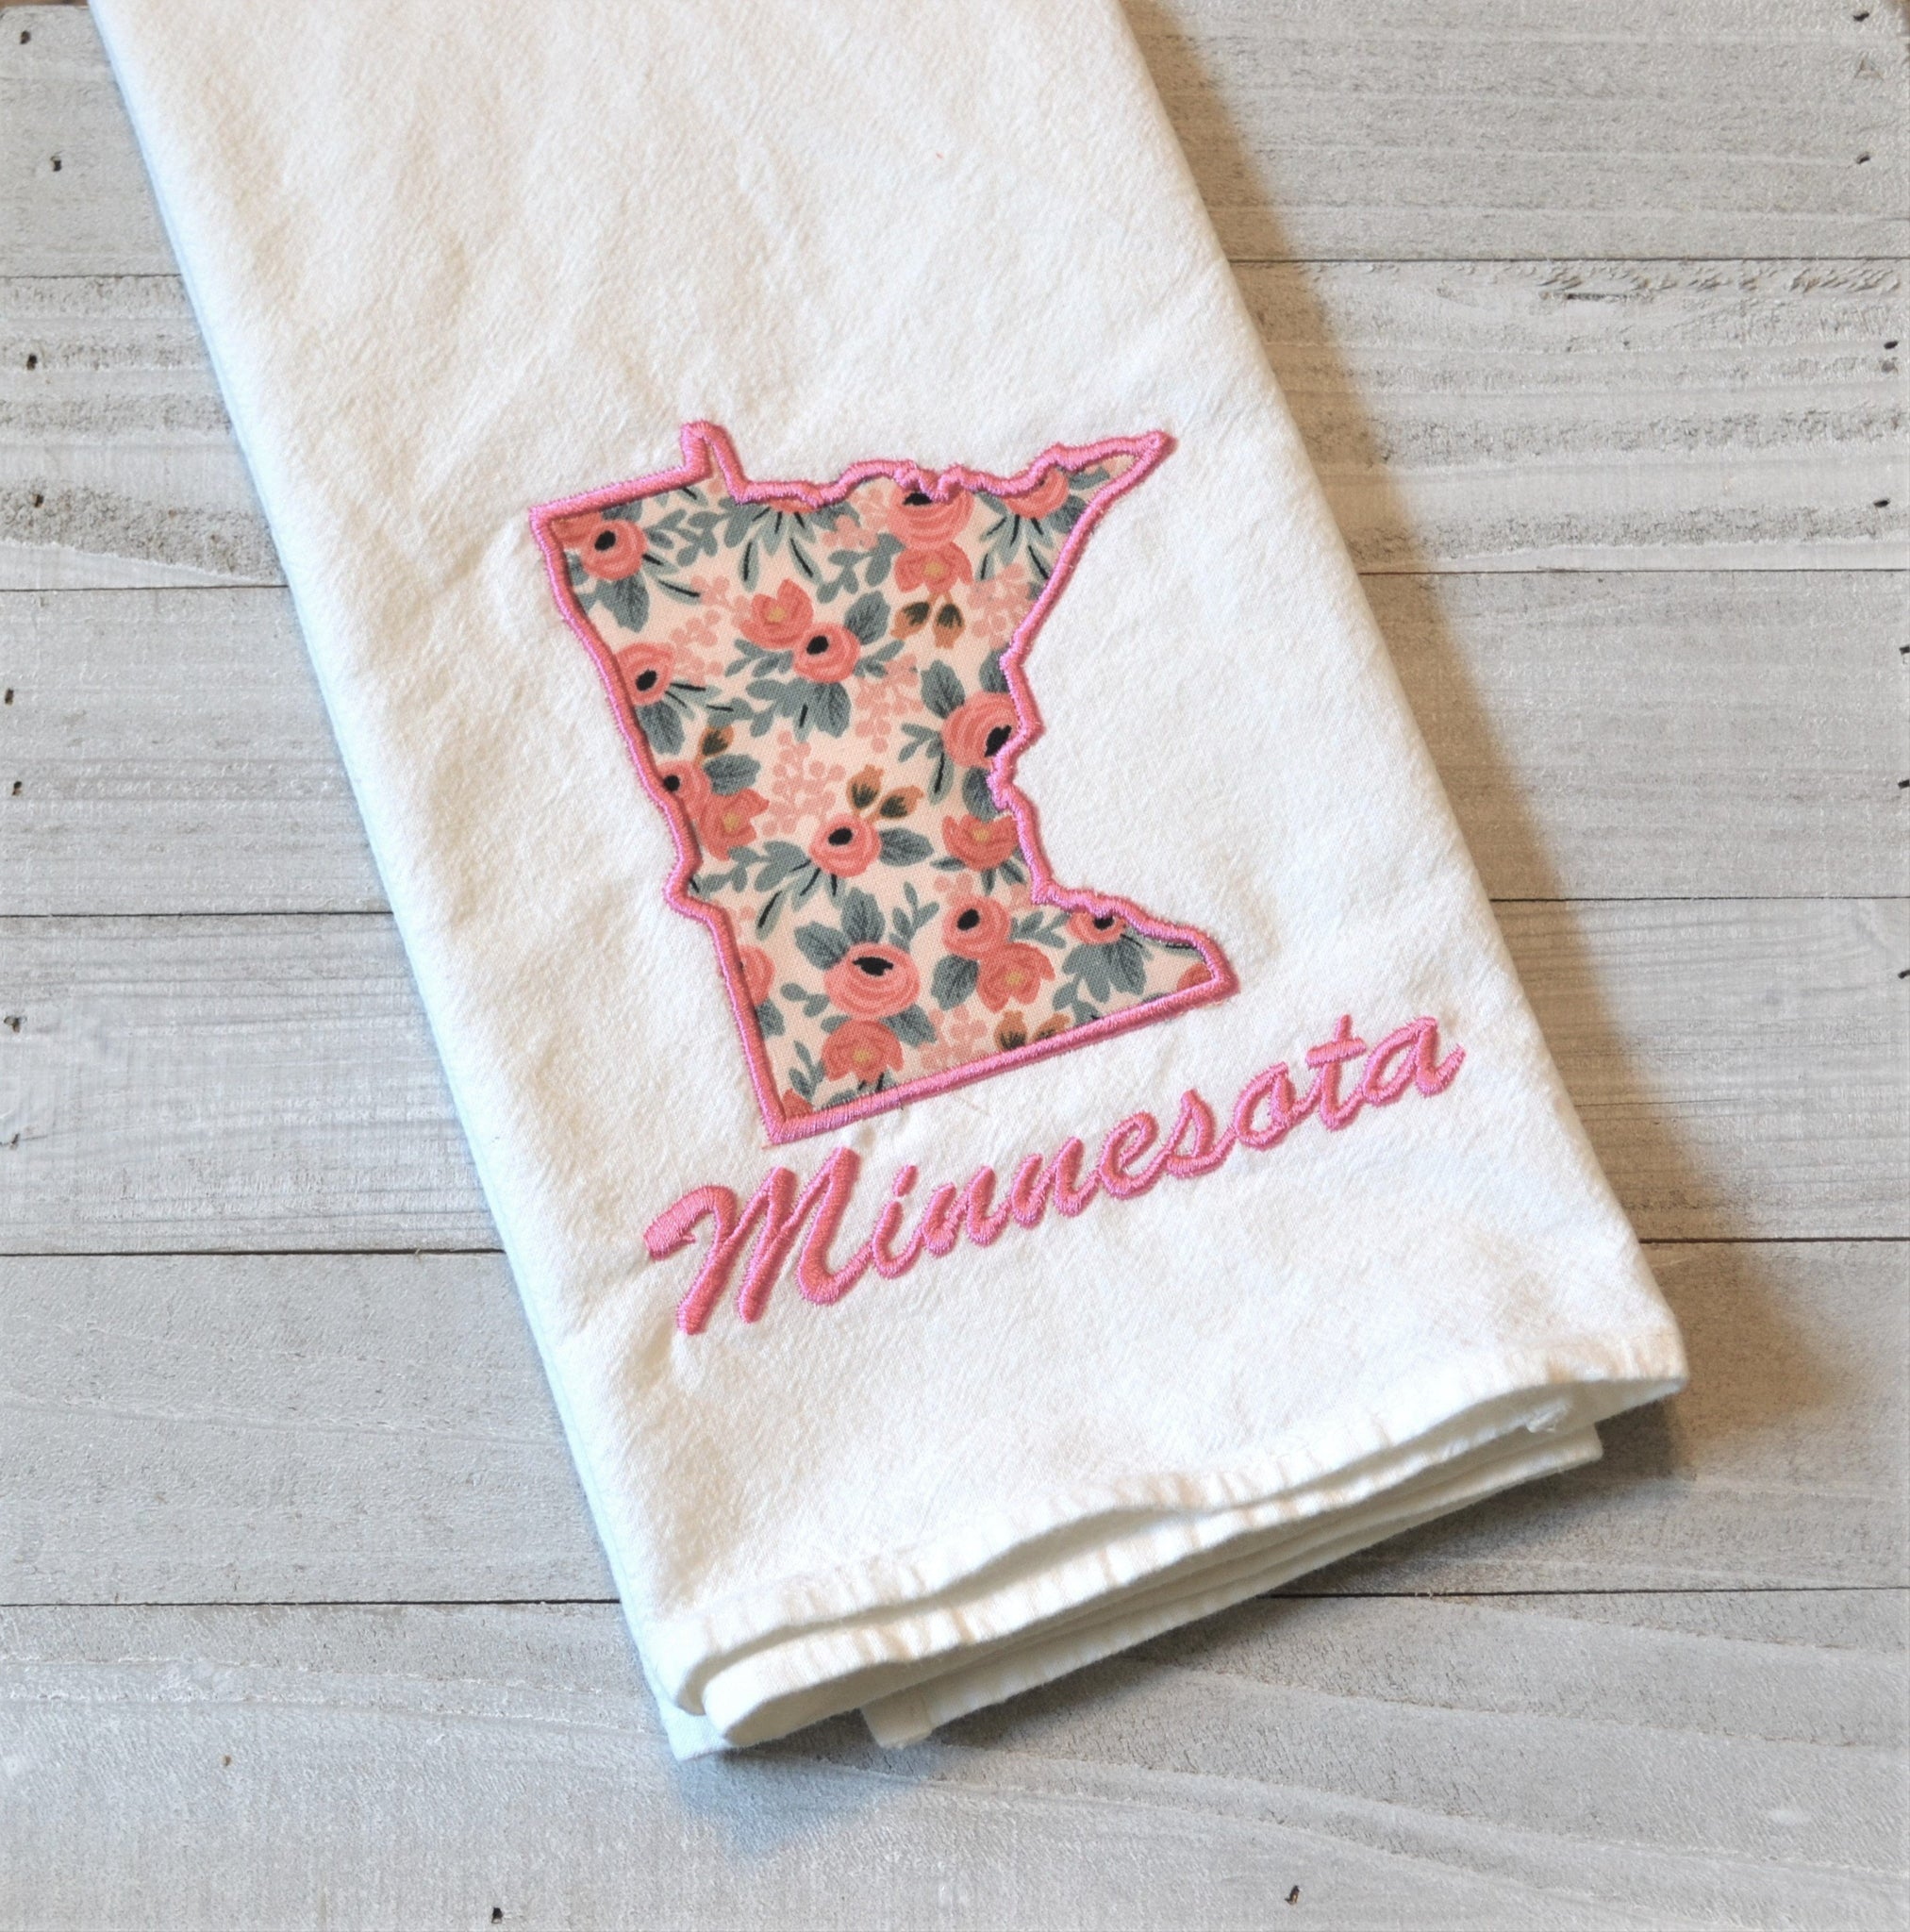 I Love Minnesota Tea Towel - Floral - Pink or Teal